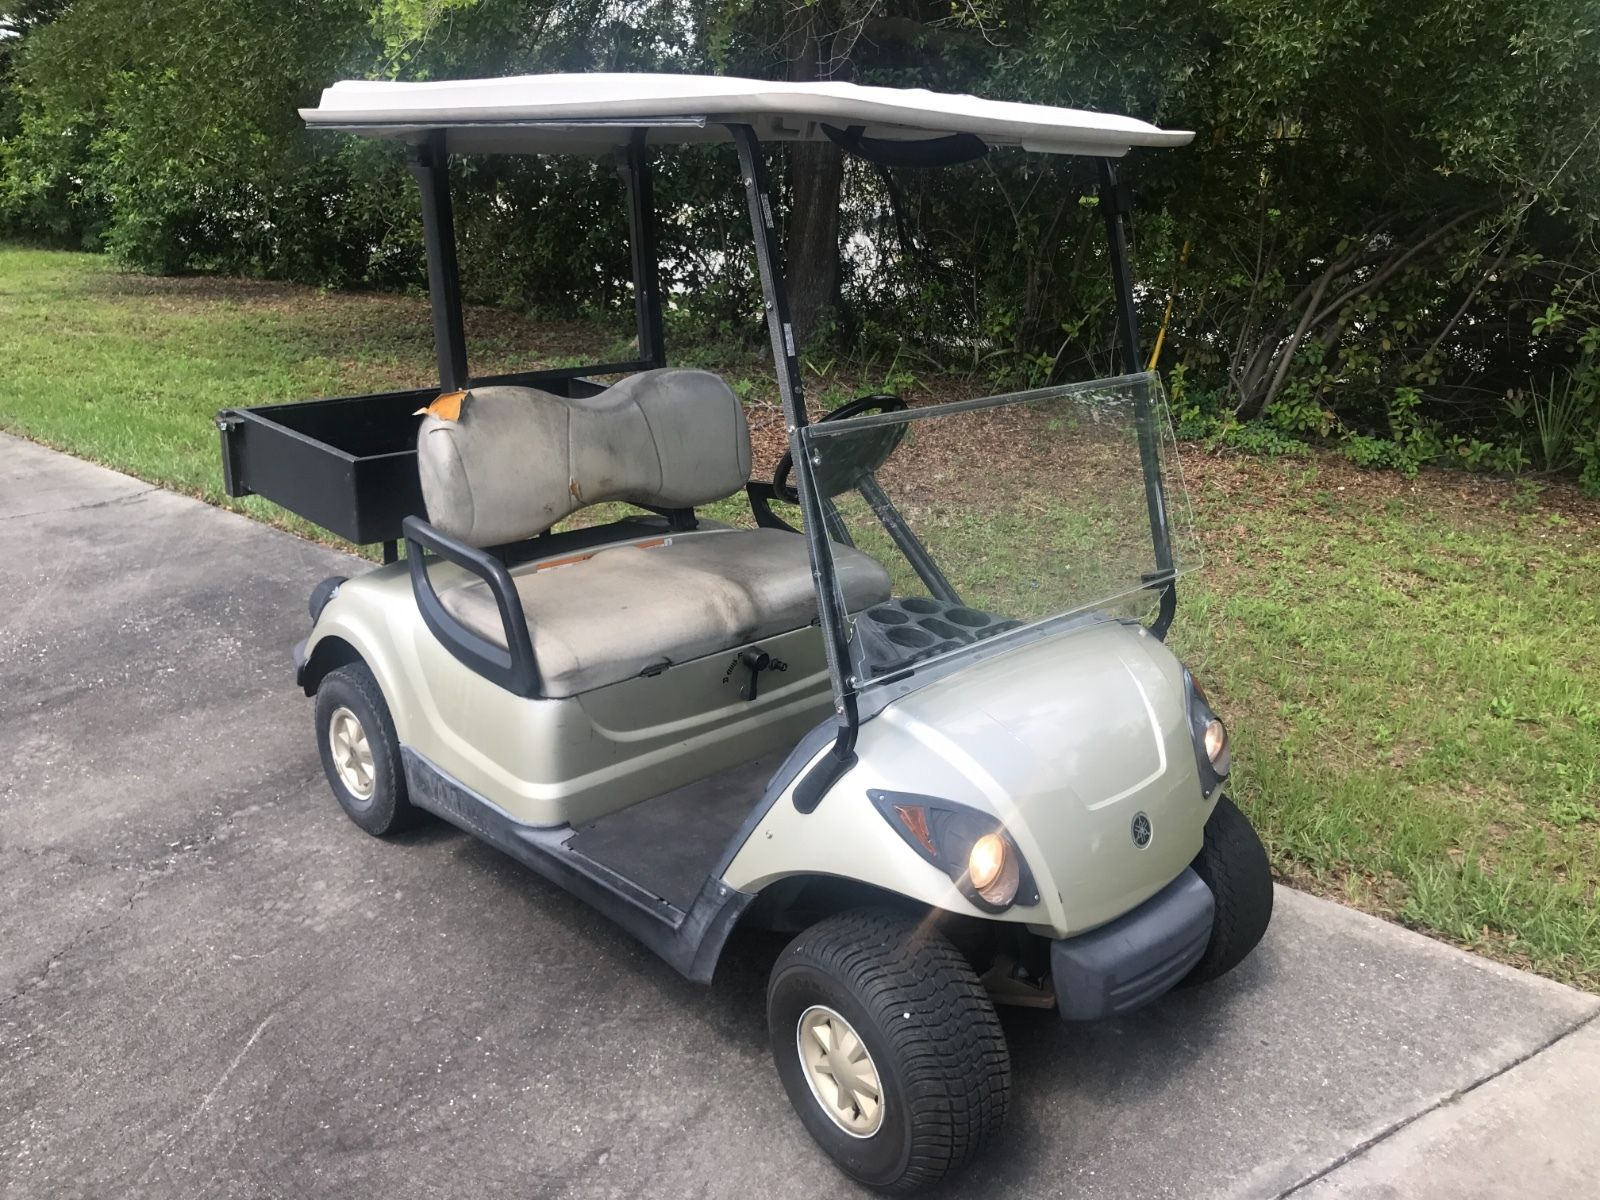 Polaris Gem For Sale Top Car Release 2019 2020 Golf Cart Forum Gt Ezgo Txt Factory Accessories Wiring Diagram Gas Cargo Bed 2007 Yamaha